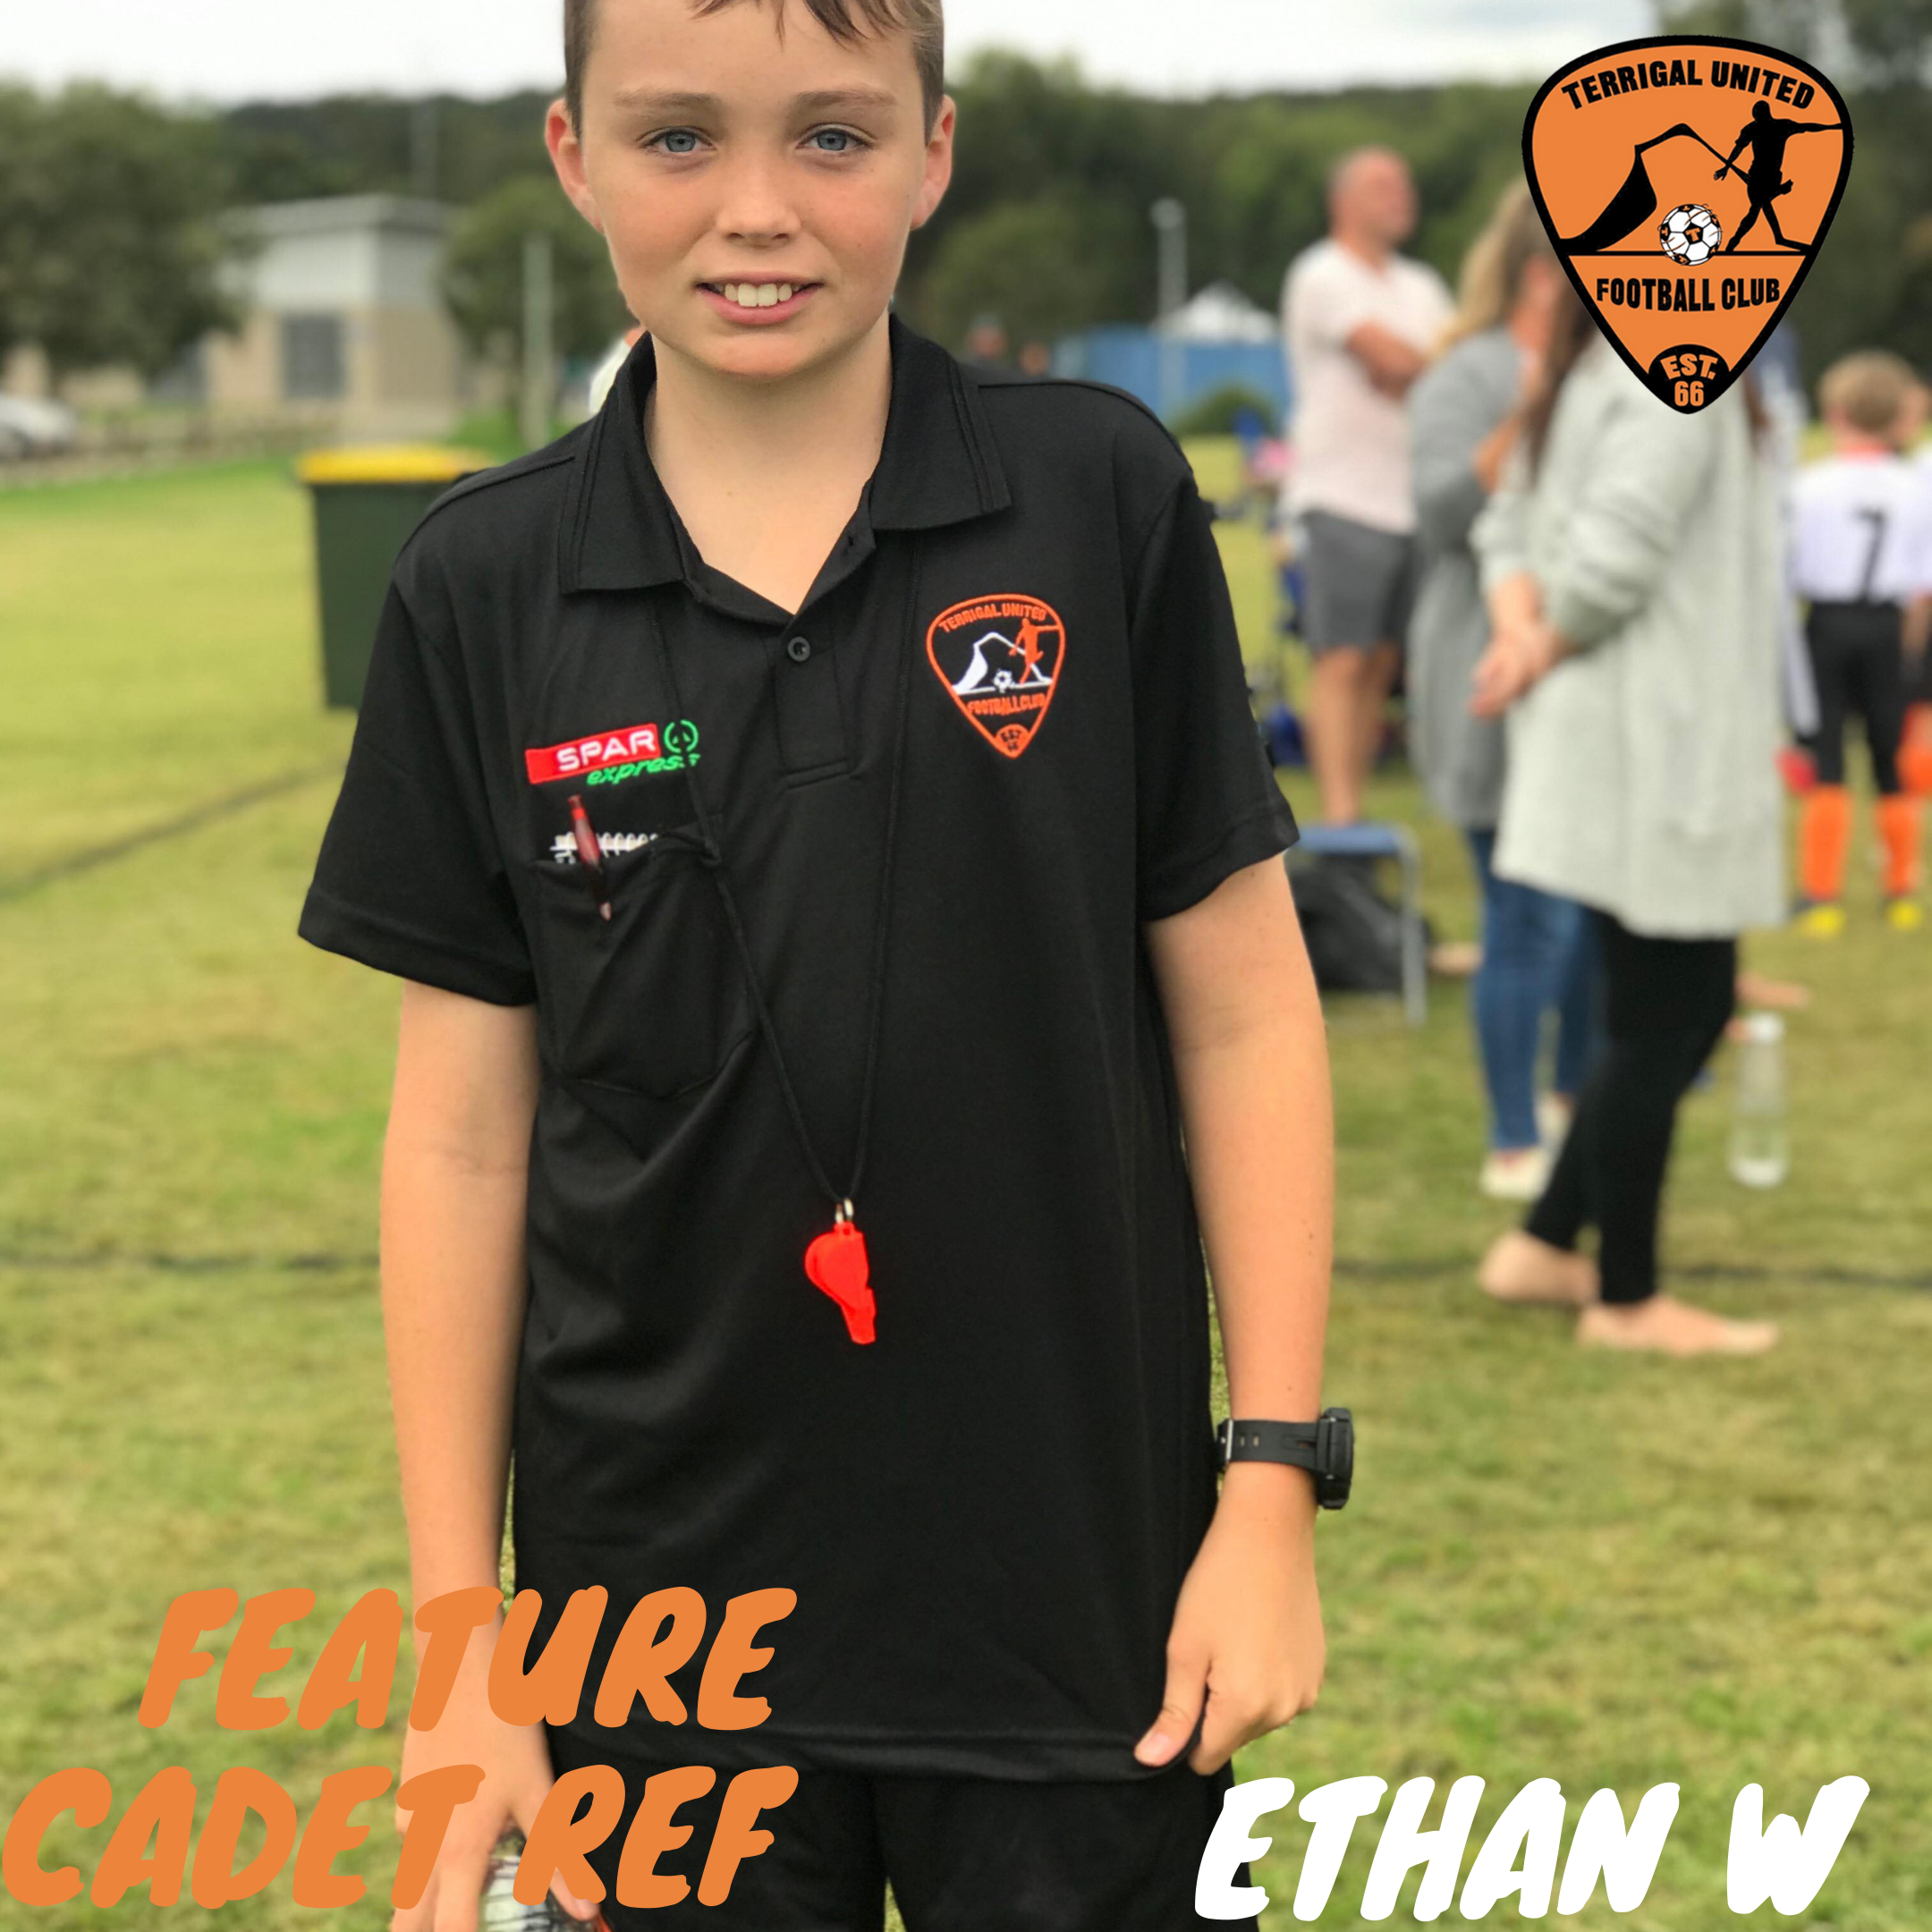 Feature Cadet: Ethan W